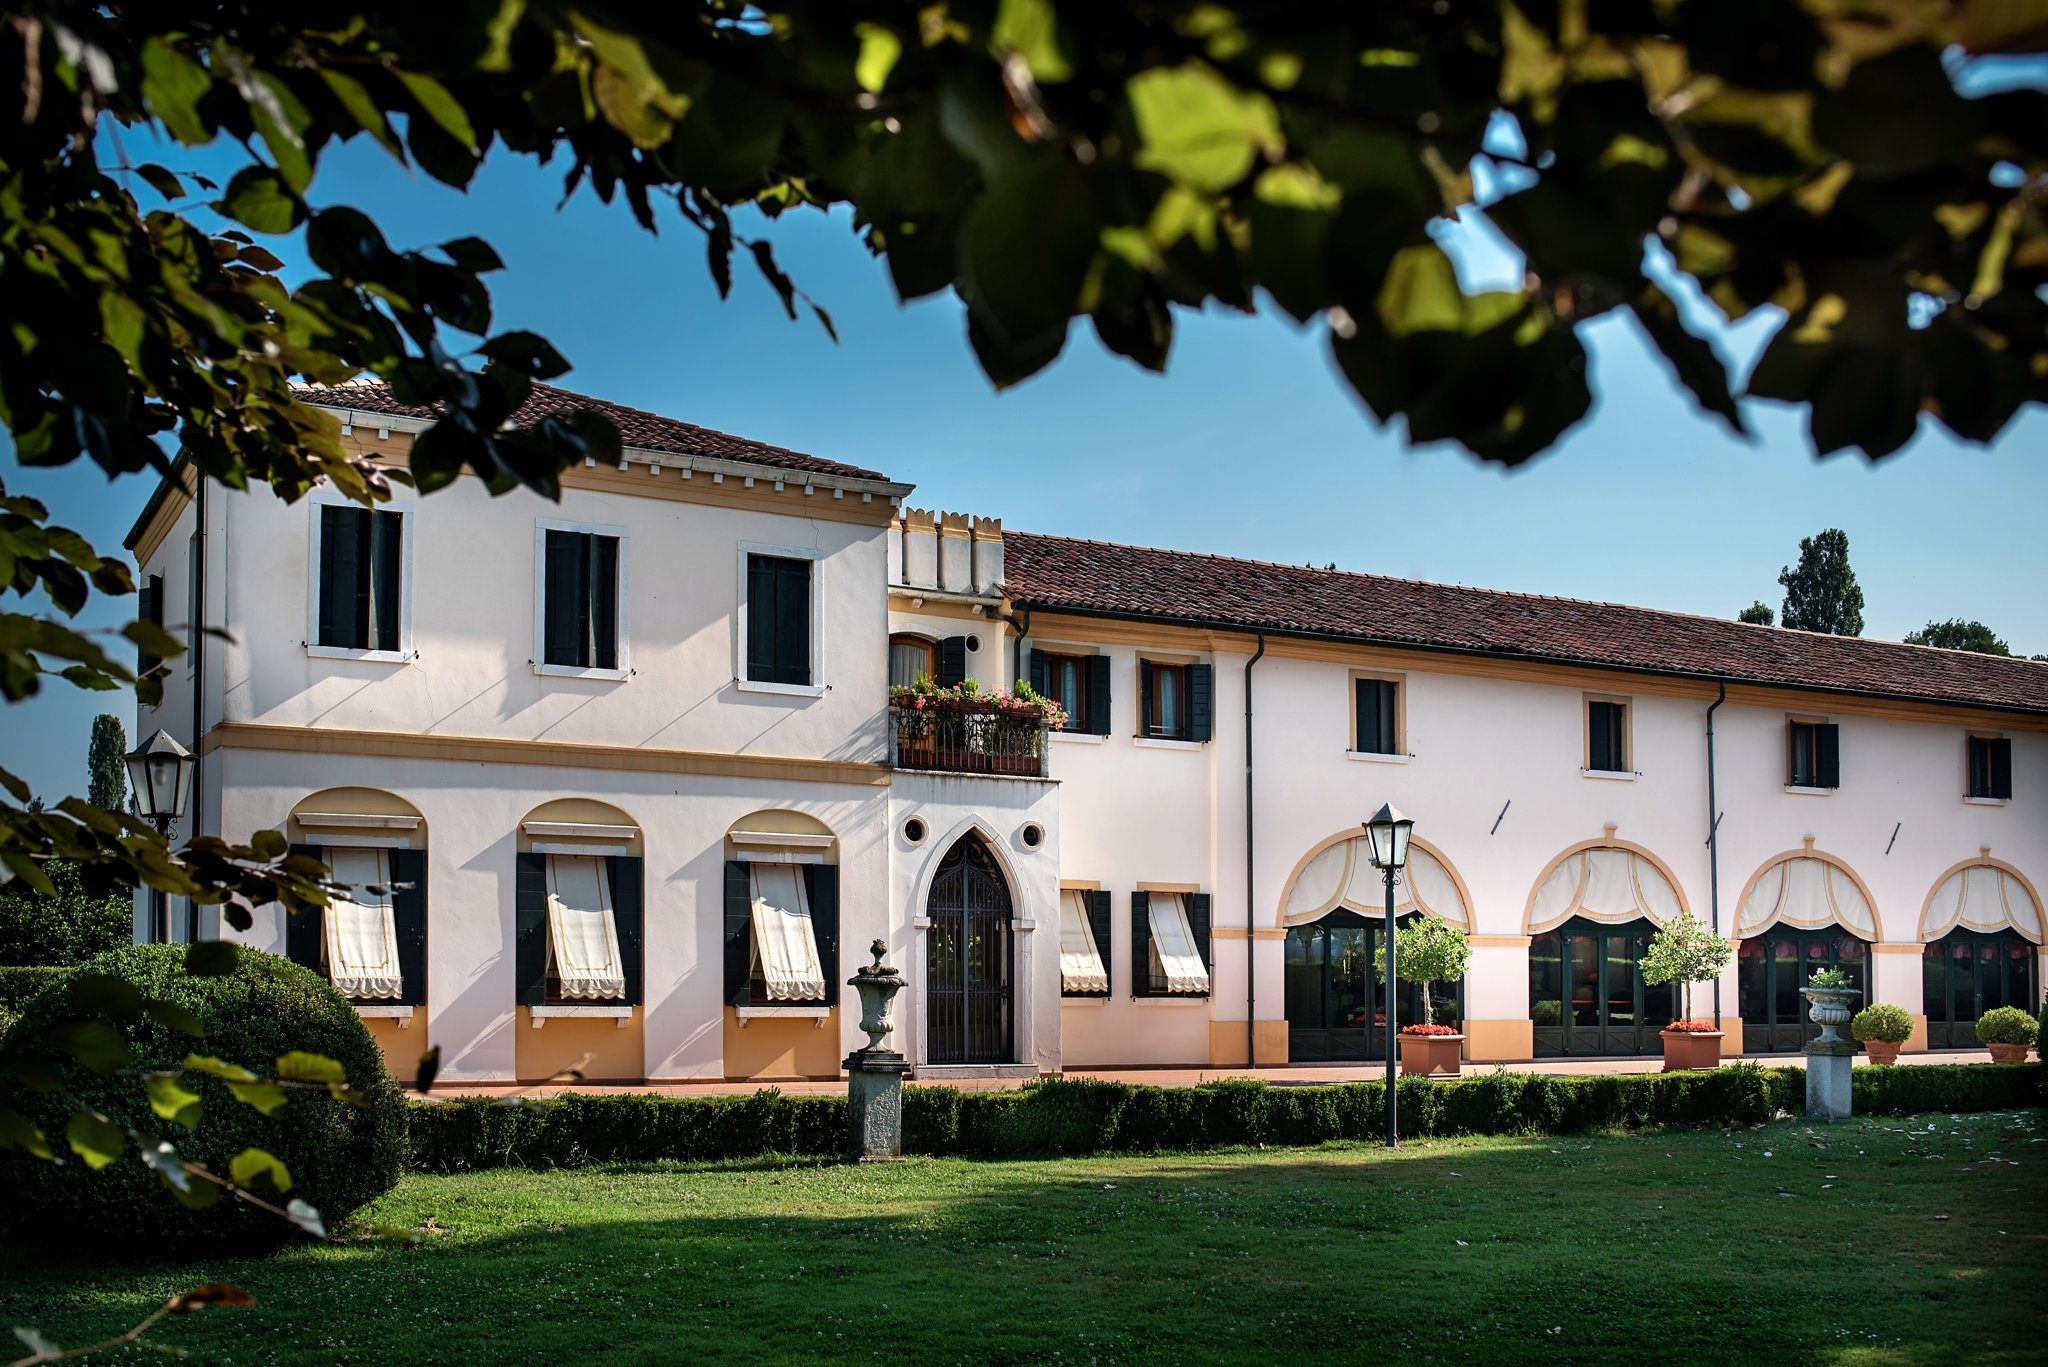 Be inspired at our Writer's Retreat in the glorious Veneto region, 08-15 September, 2019 - https://wp.me/p5eFNn-3DV